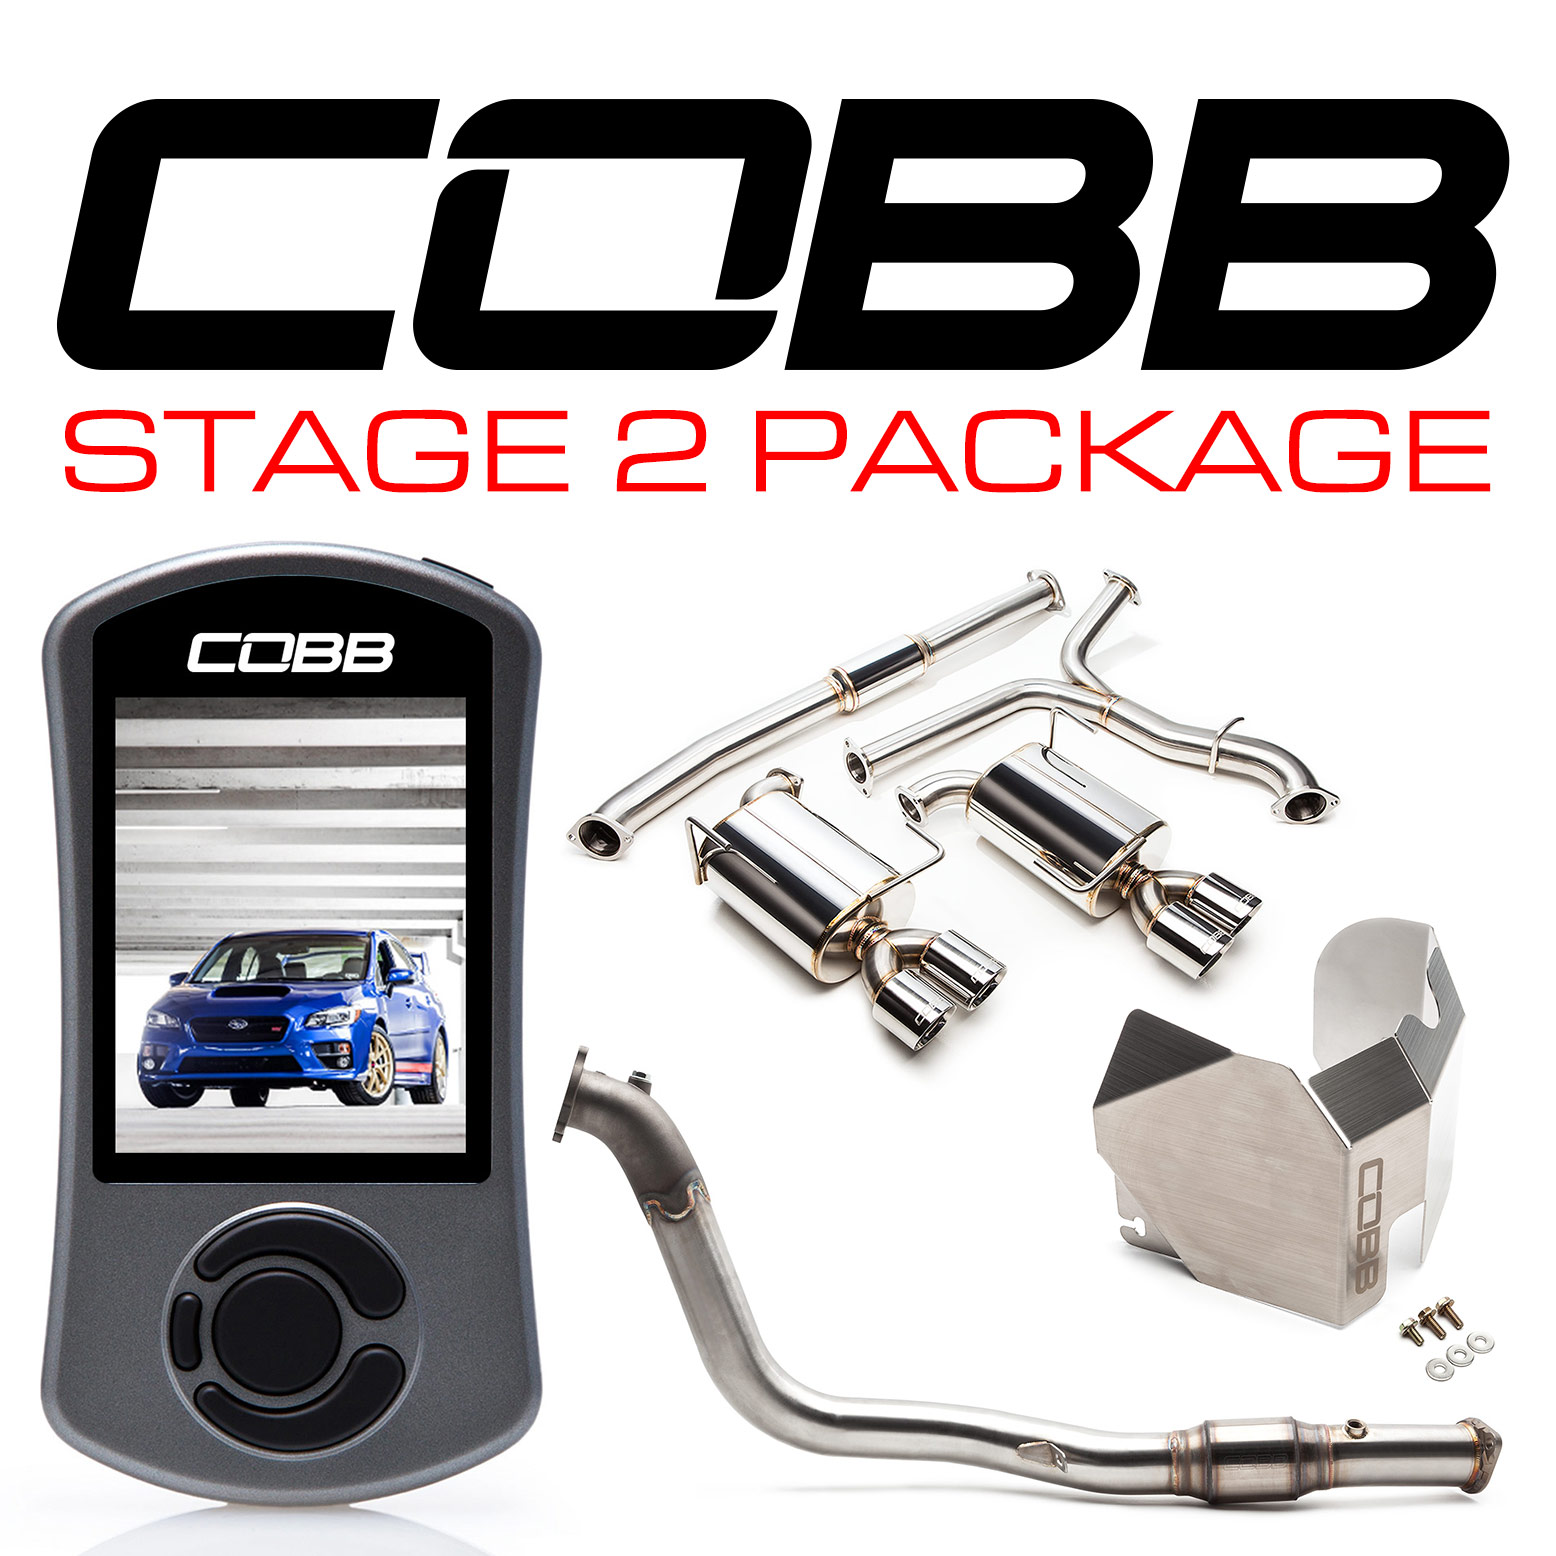 Subaru Stage 2 Power Package STI 2015-2018, STI Type RA 2018